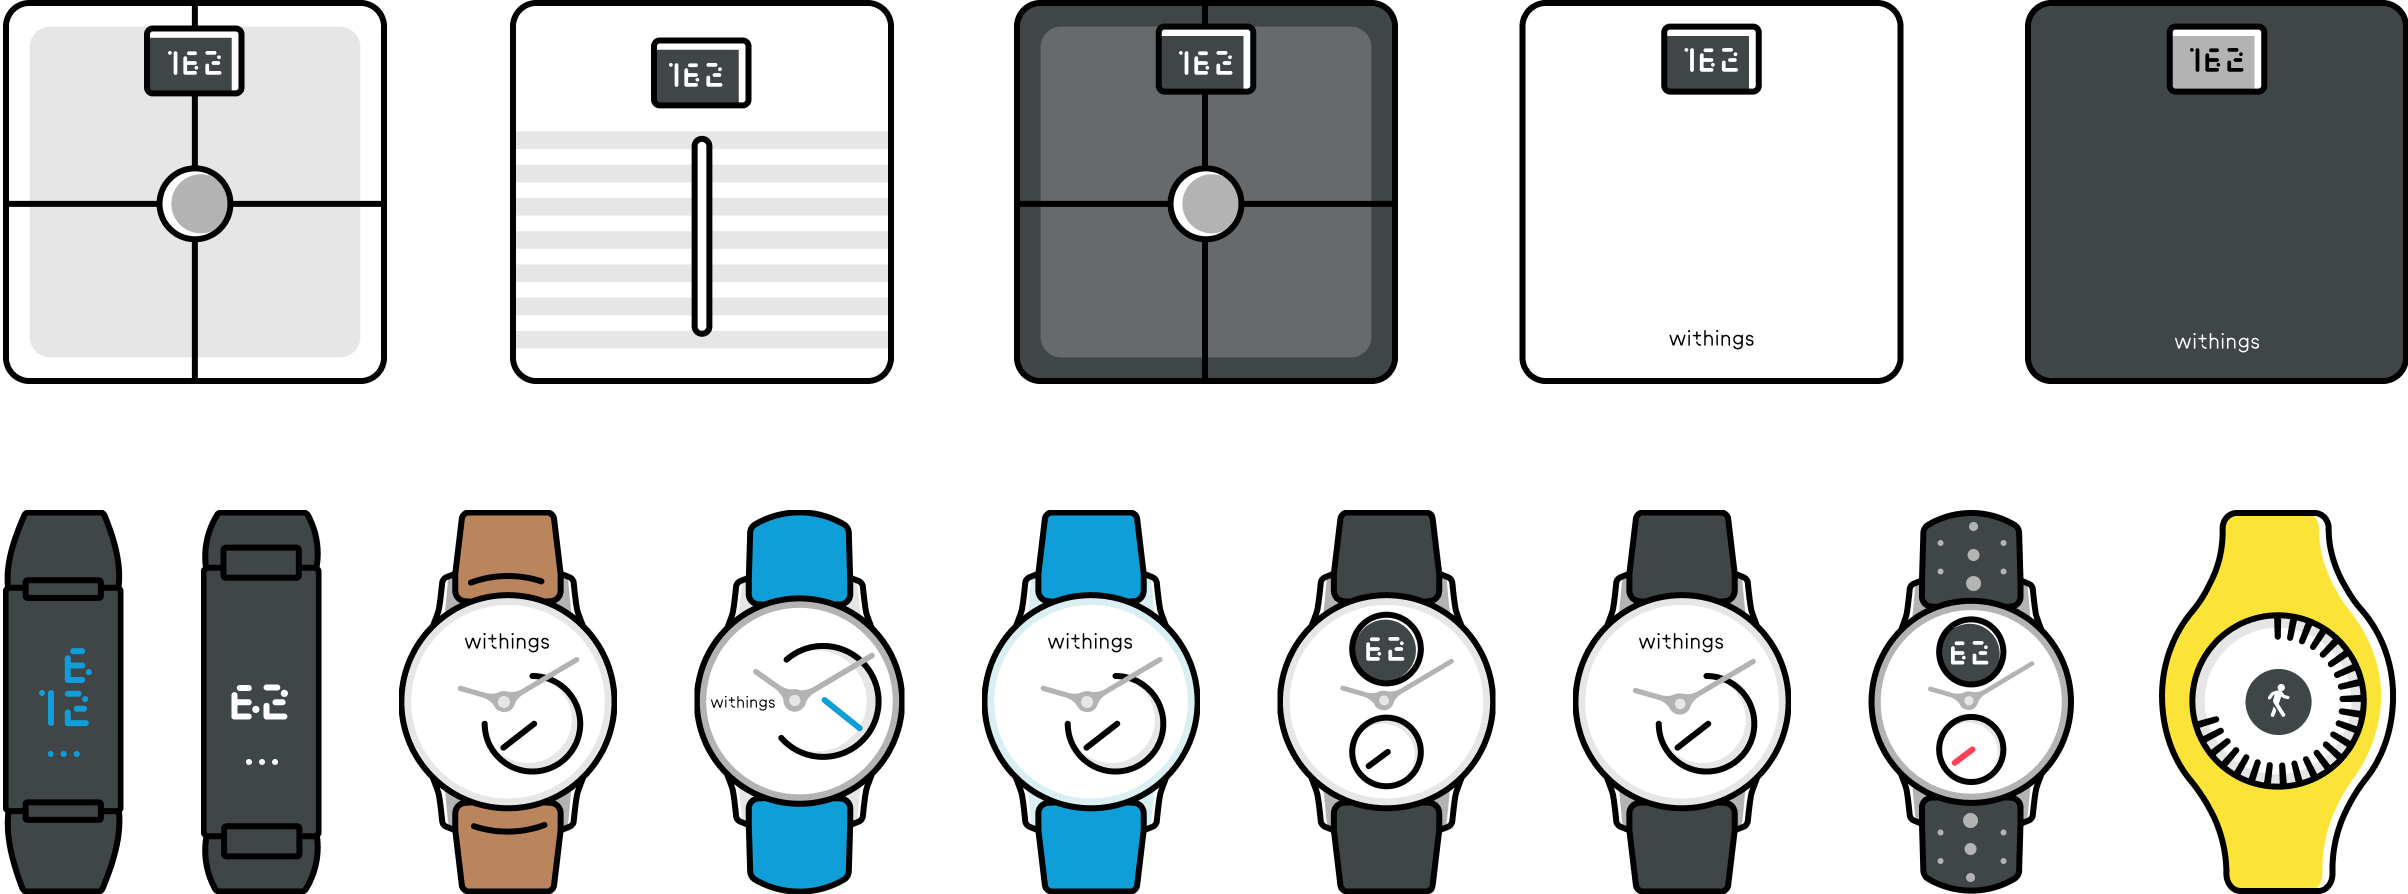 all-withings-devices.png